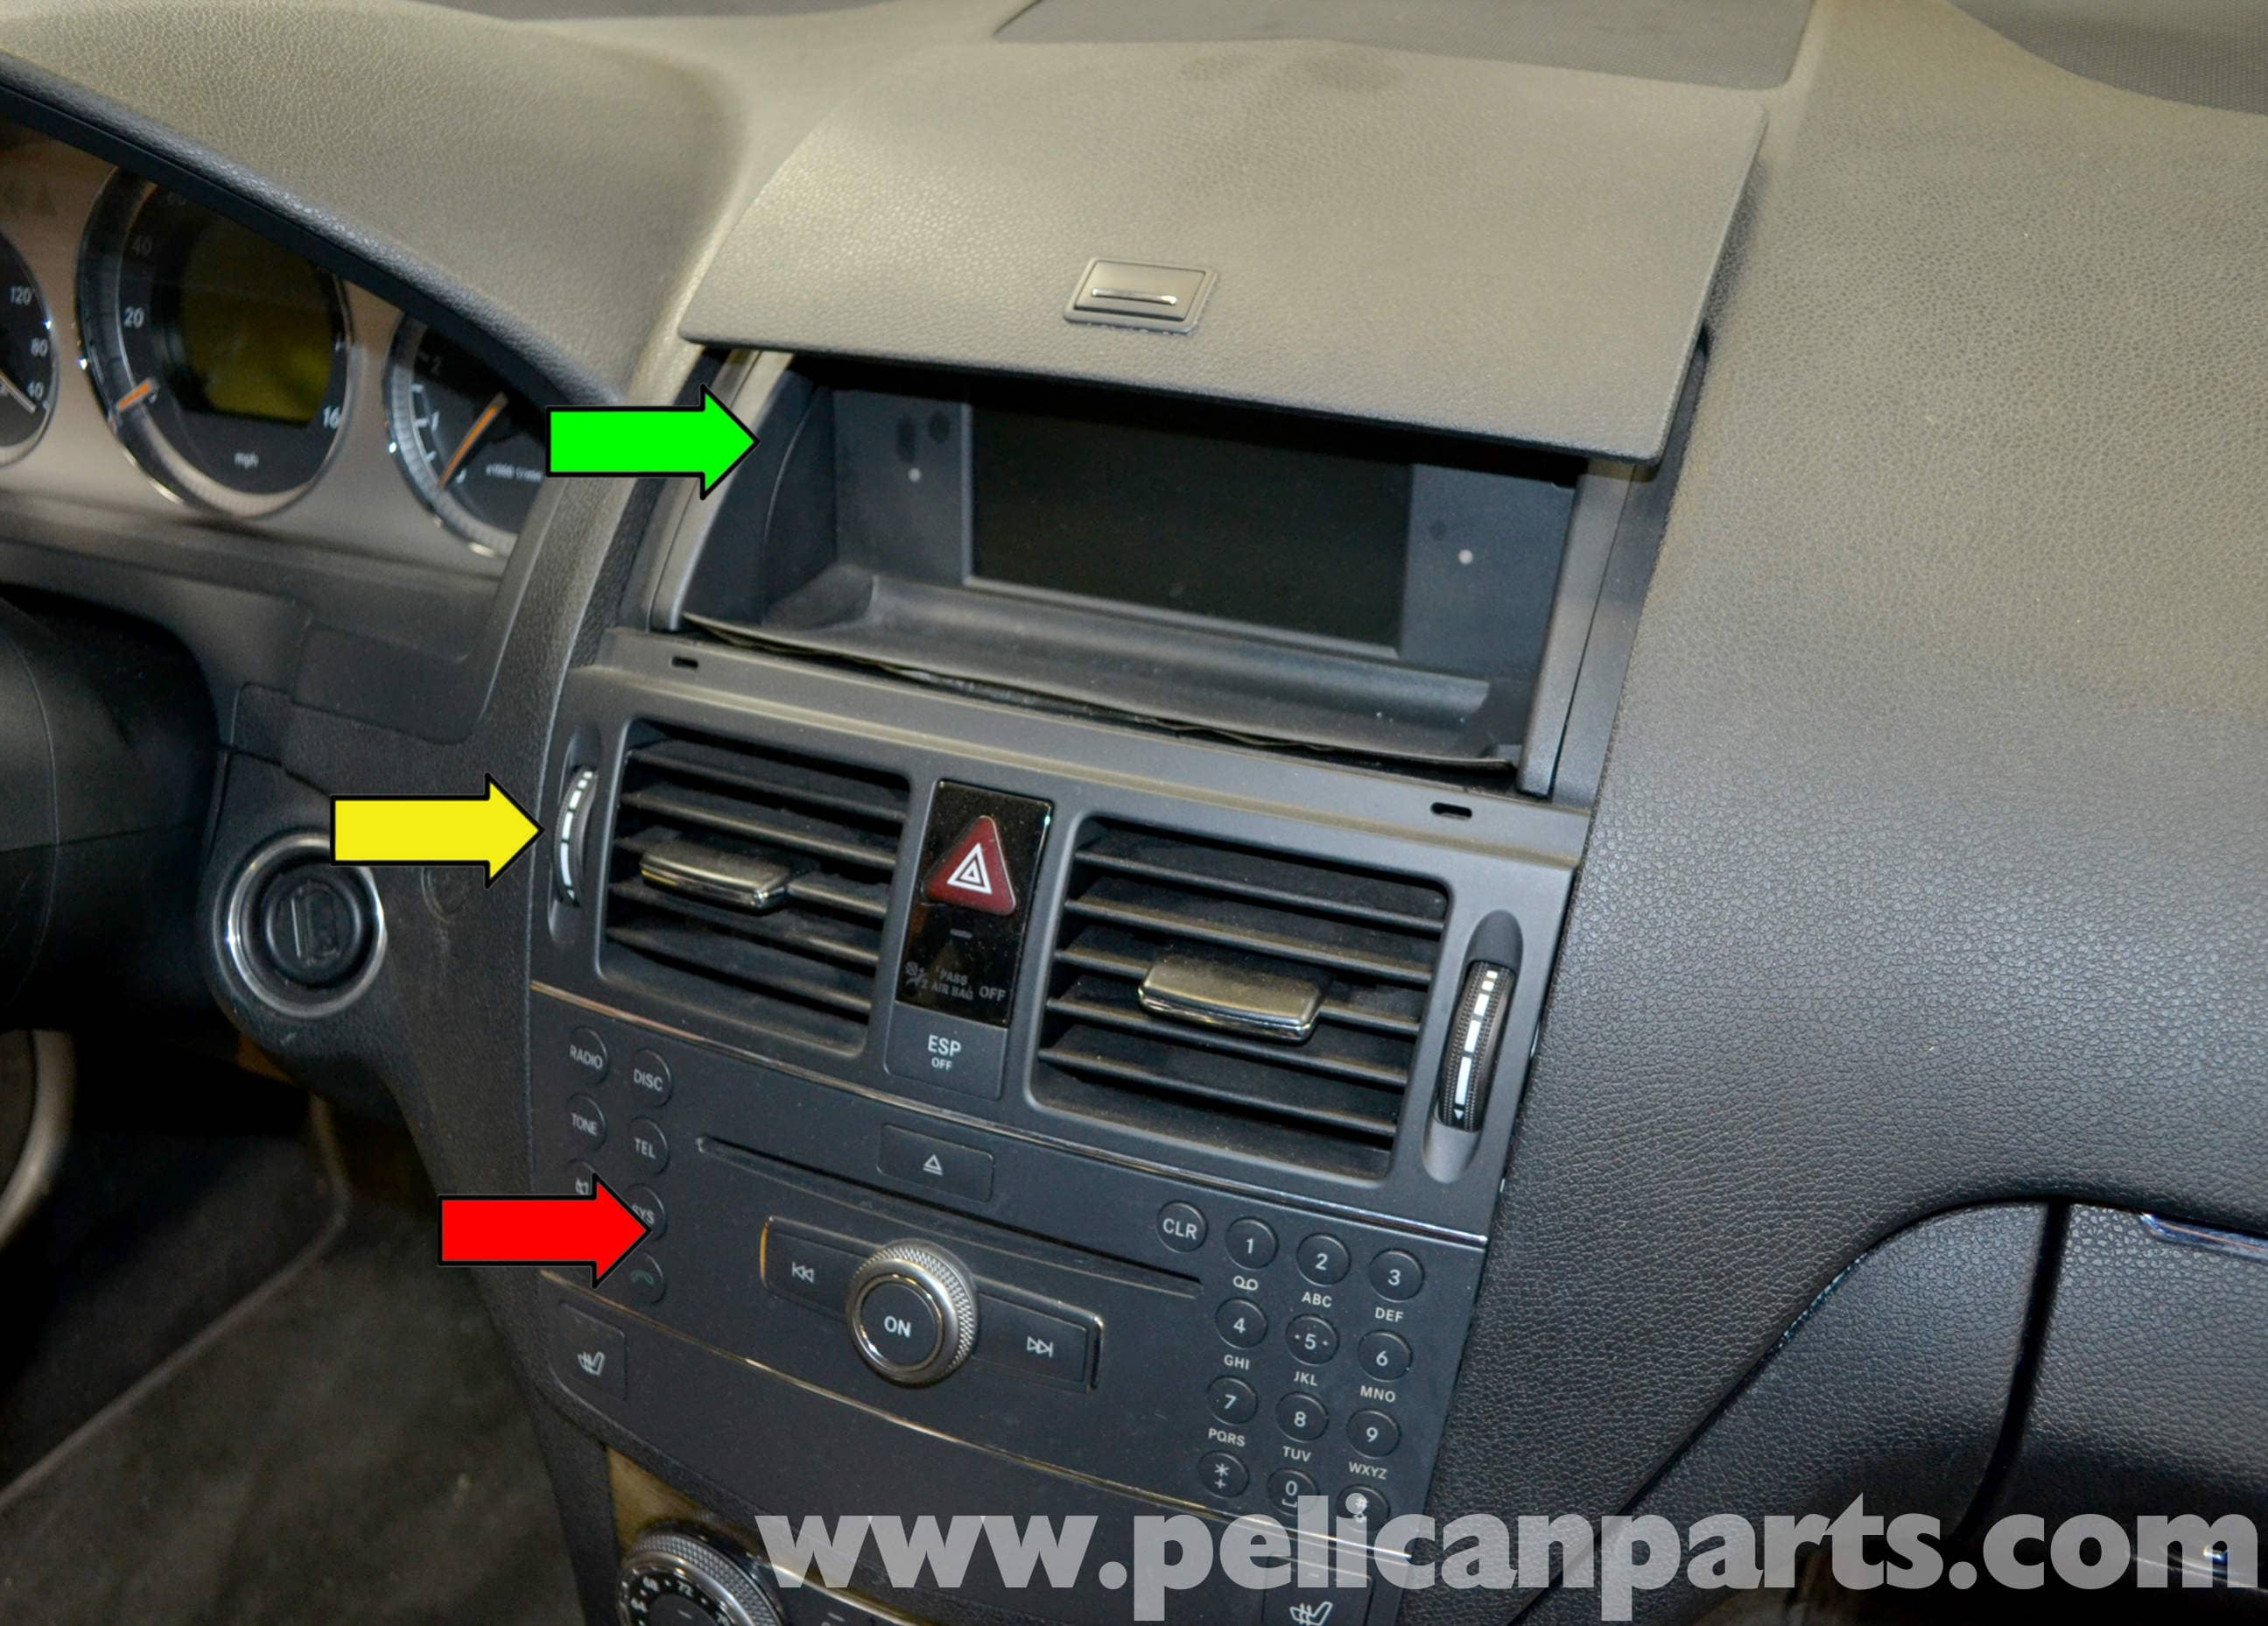 Mercedes benz w204 stereo removal 2008 2014 c250 c300 for Mercedes benz audio upgrades